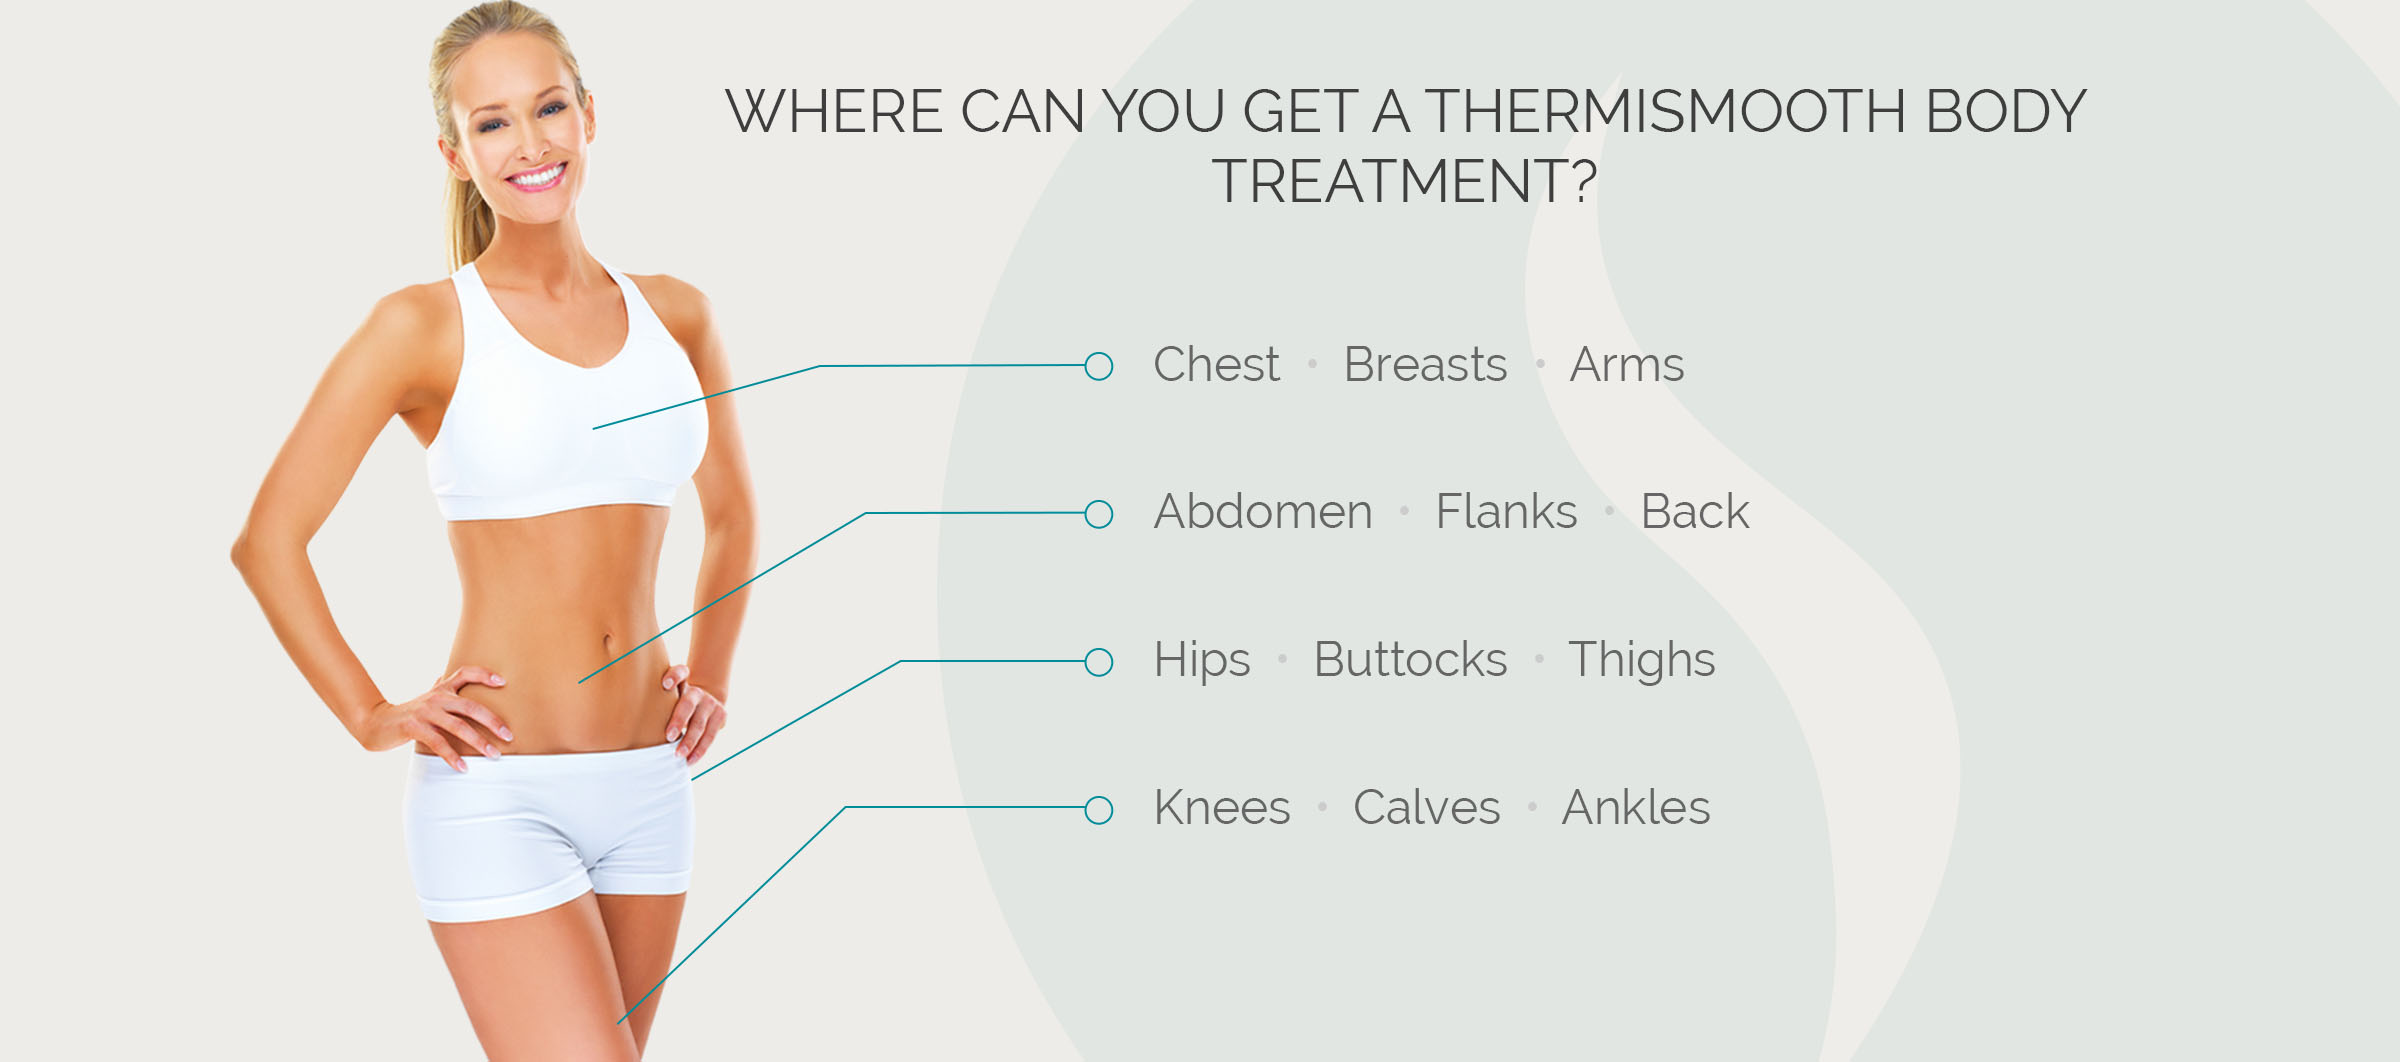 Where_Can_You_Thermi_Treatment_Comps_lger_080216_0000_ThermiSmooth Body